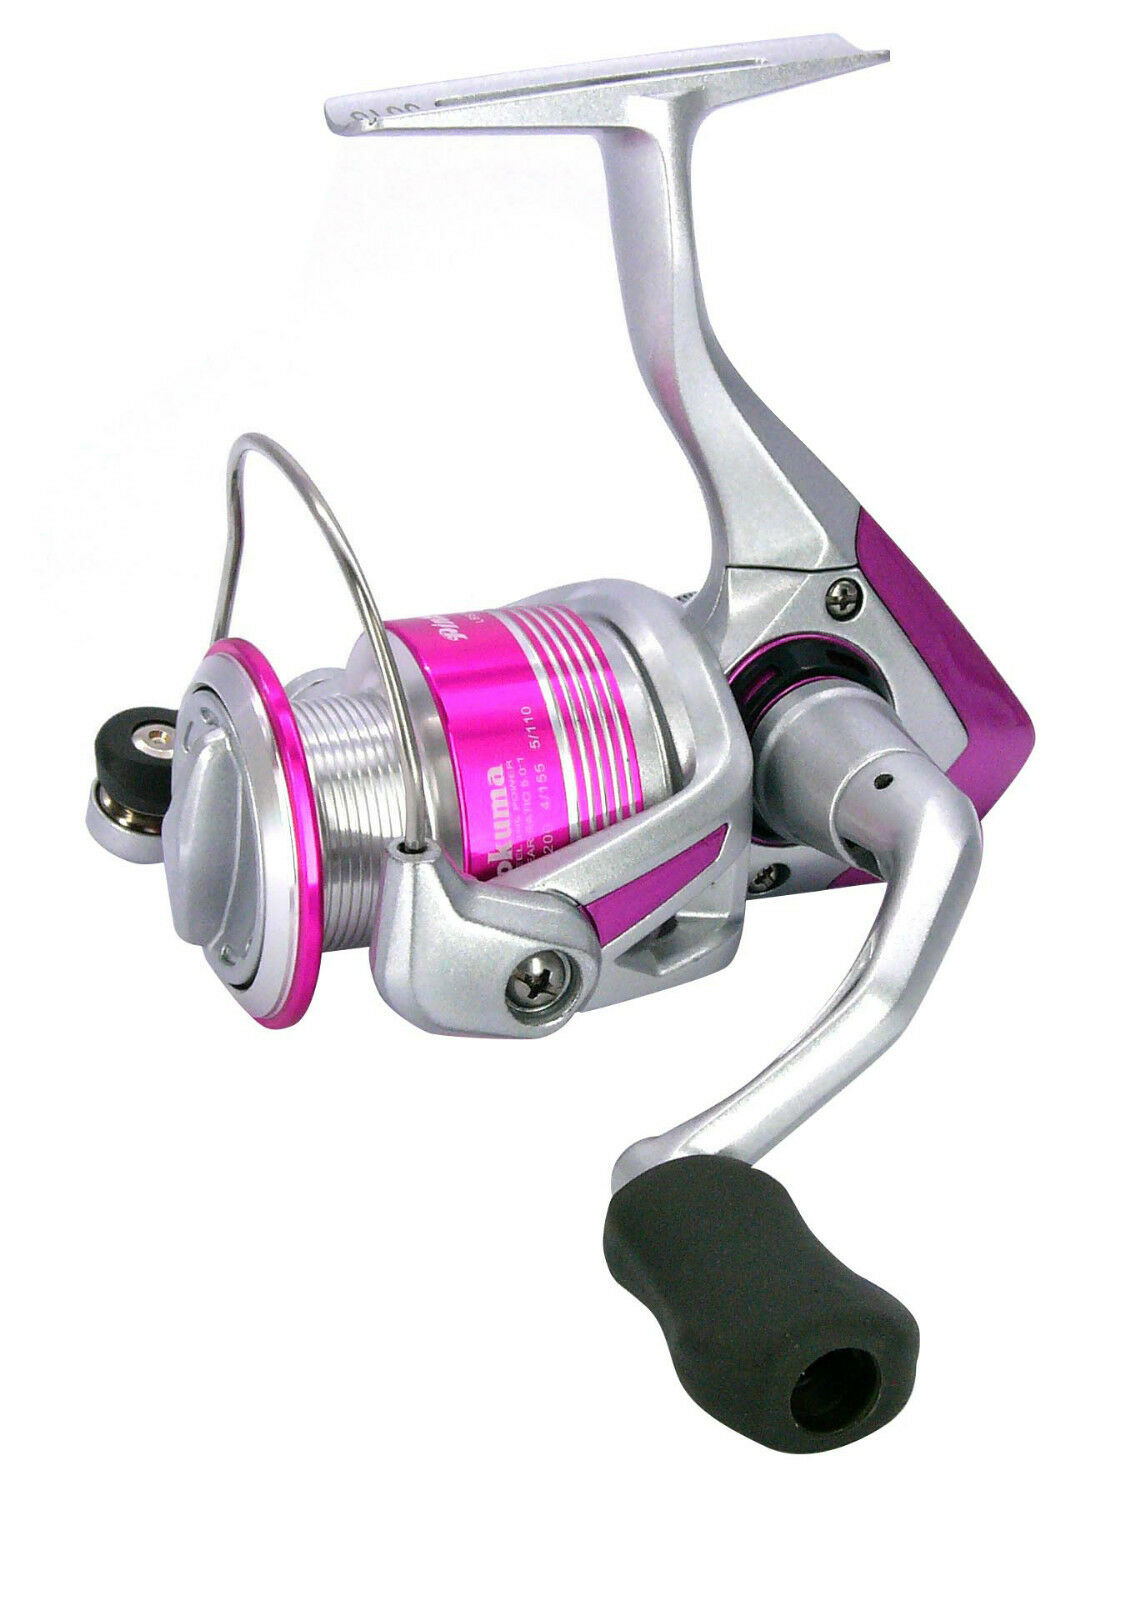 OKUMA PINK PEARL PP-30 FRONT DRAG FIXED SPOOL SPINNING REEL  MATCH LADIES FISHING  official quality